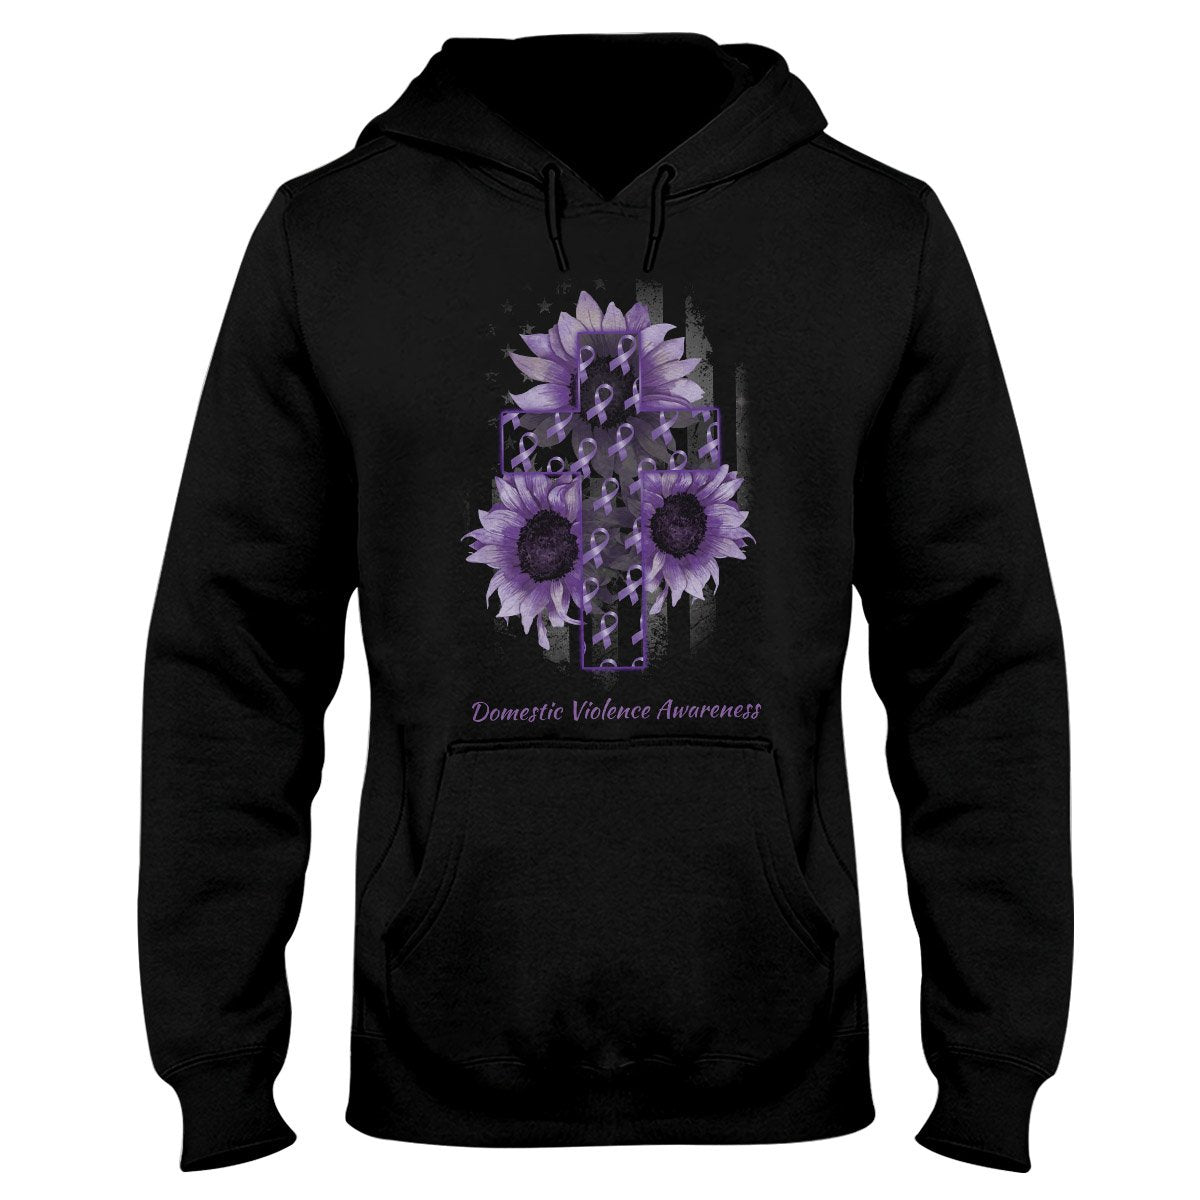 American Flag And The Cross Domestic Violence Awareness Hoodie